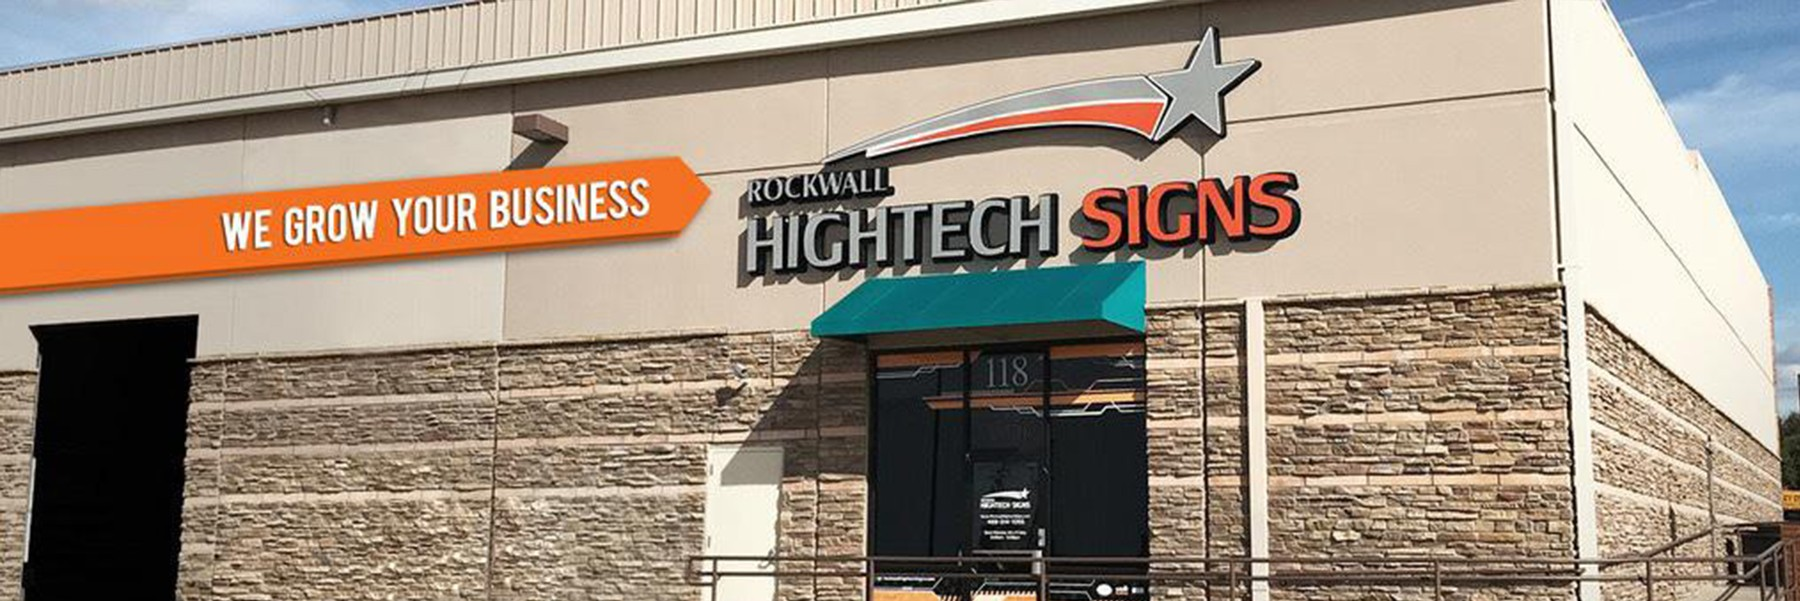 Rockwall Hightech Signs Store Front